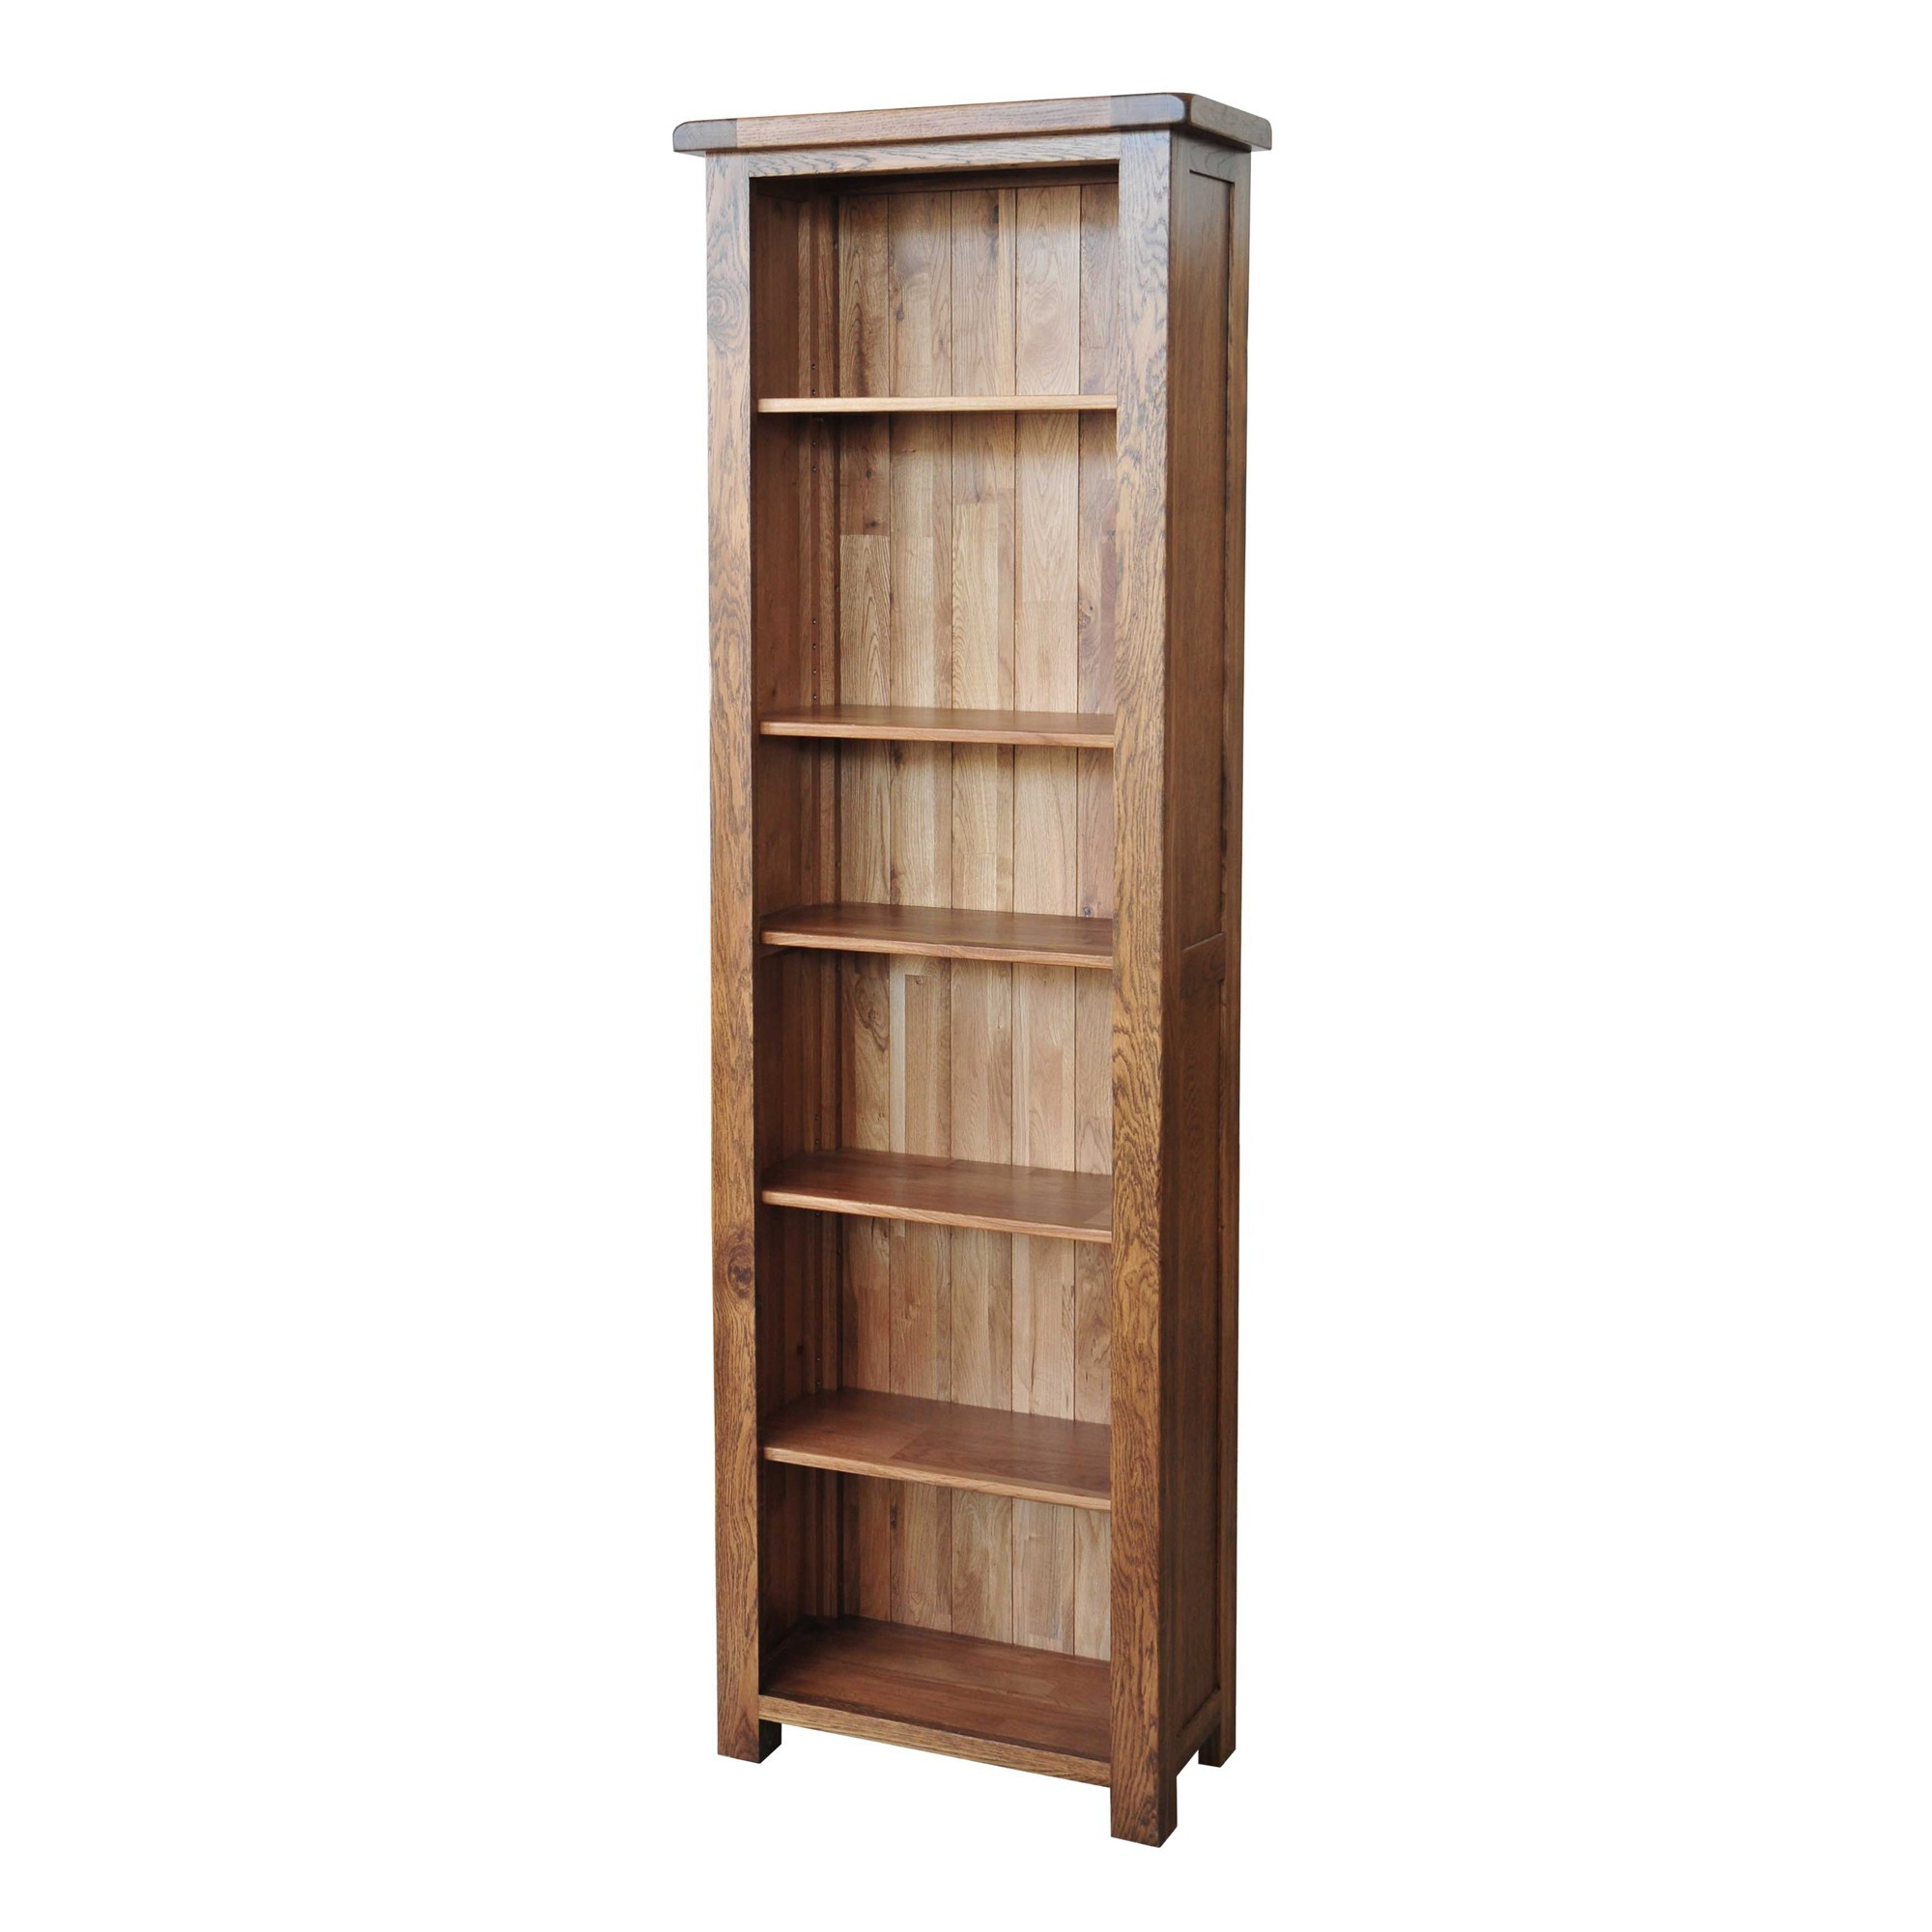 Cookes Collection Barrington 6 Foot Narrow Bookcase